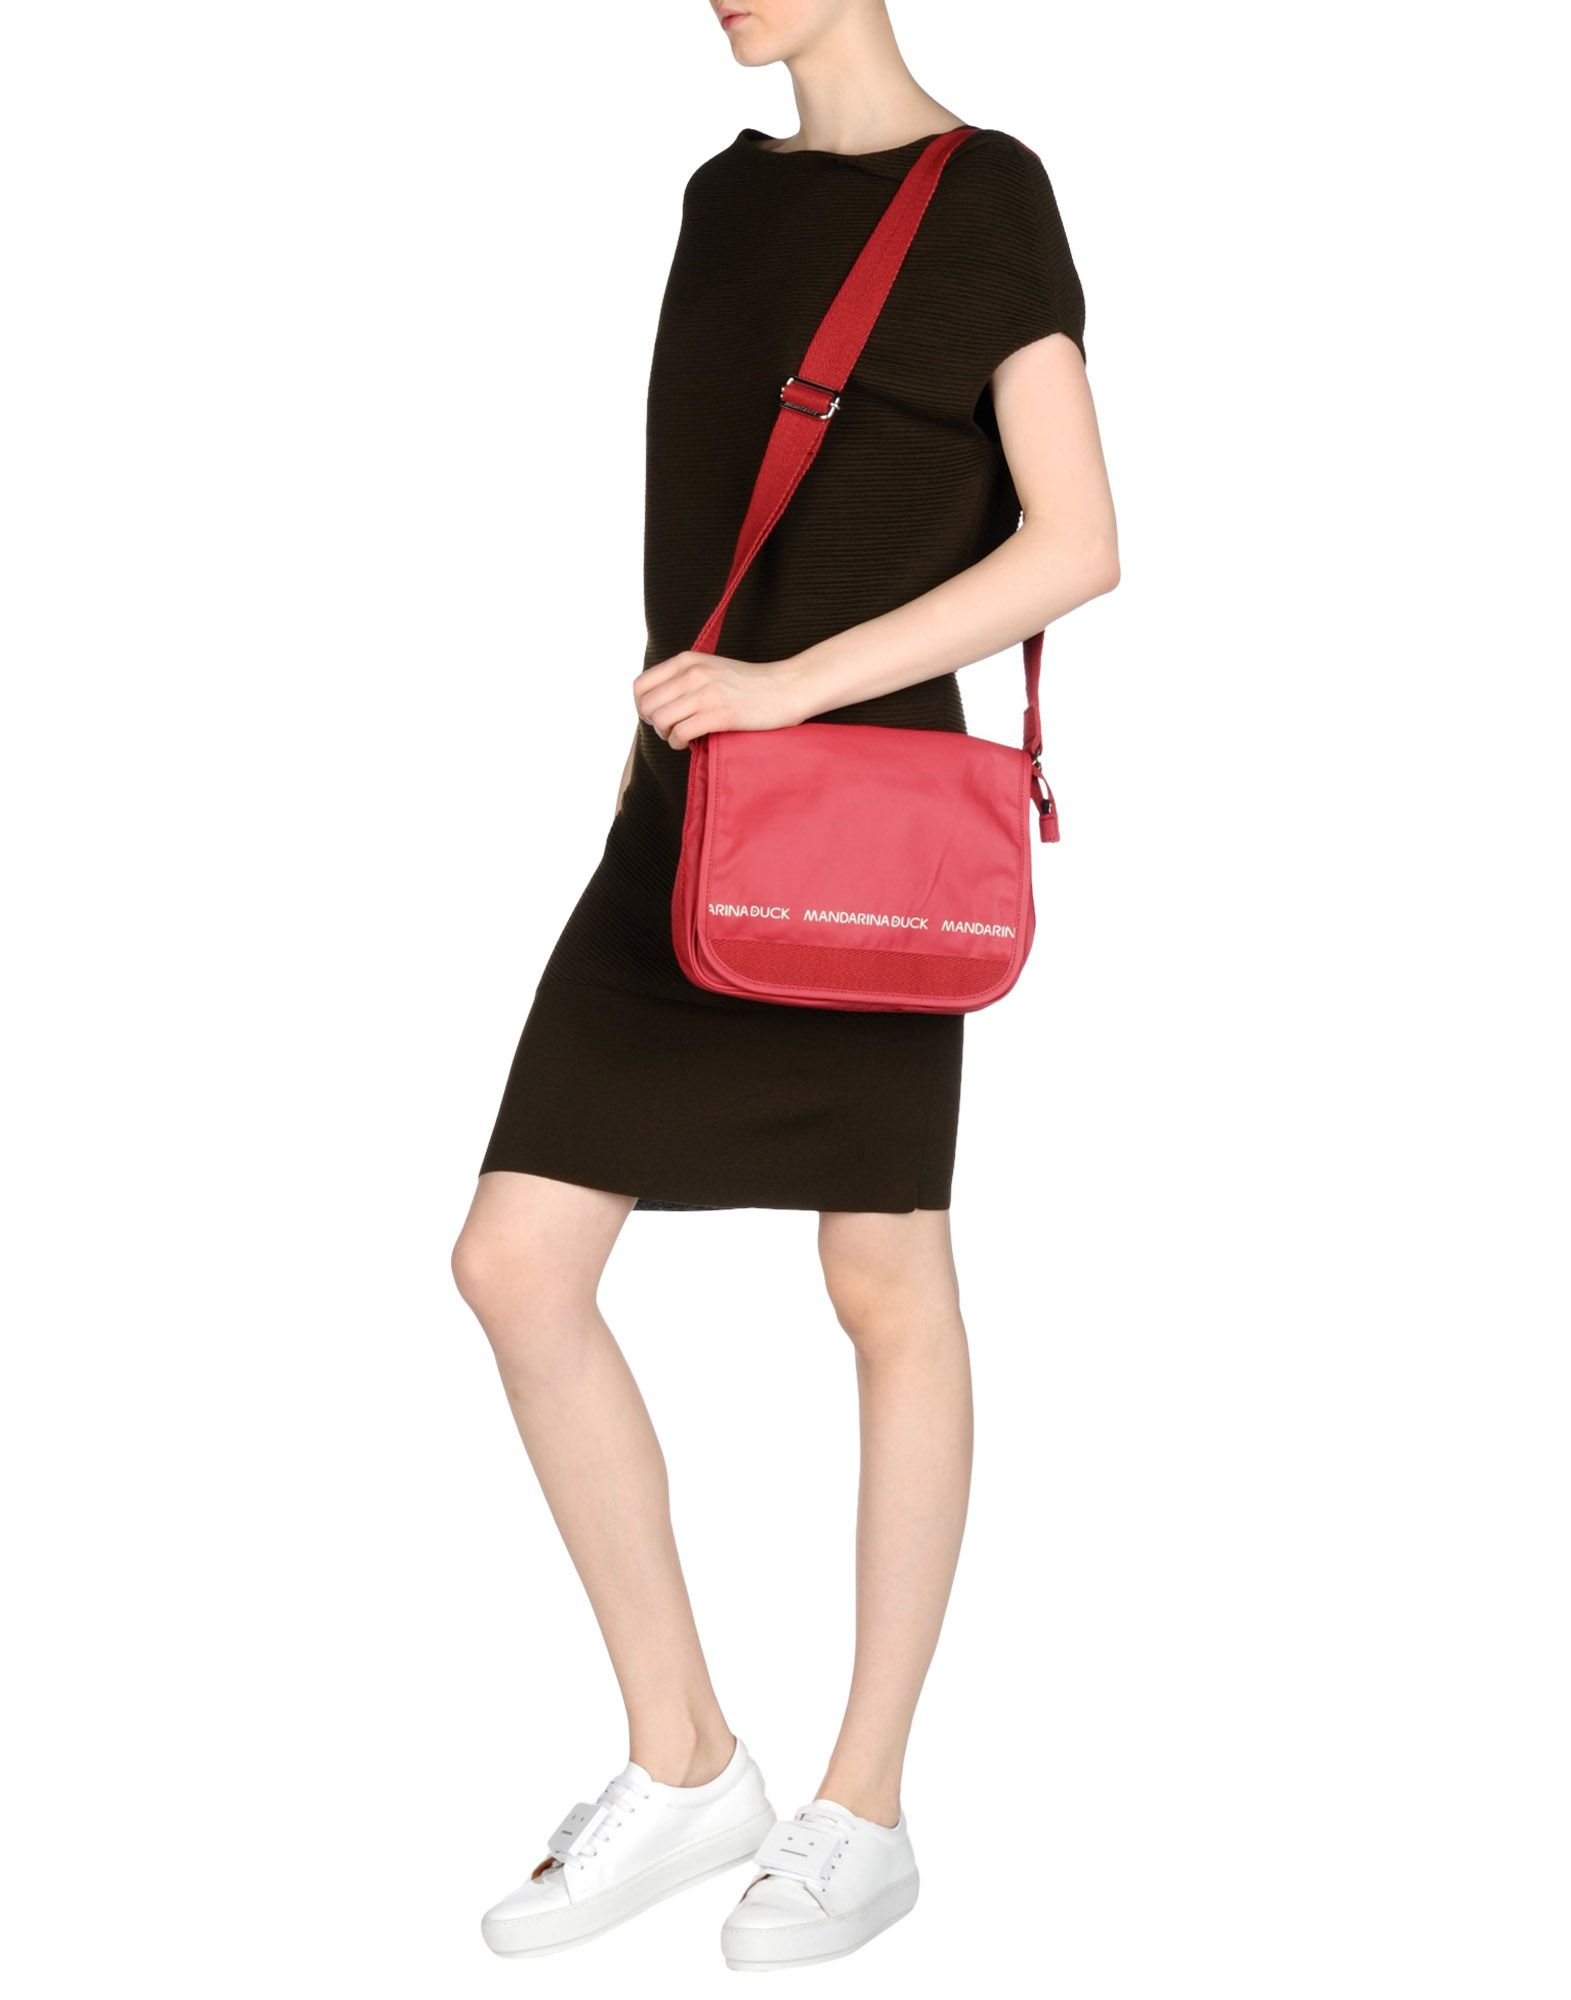 Mandarina Duck Canvas Cross-body Bag in Brick Red (Red)